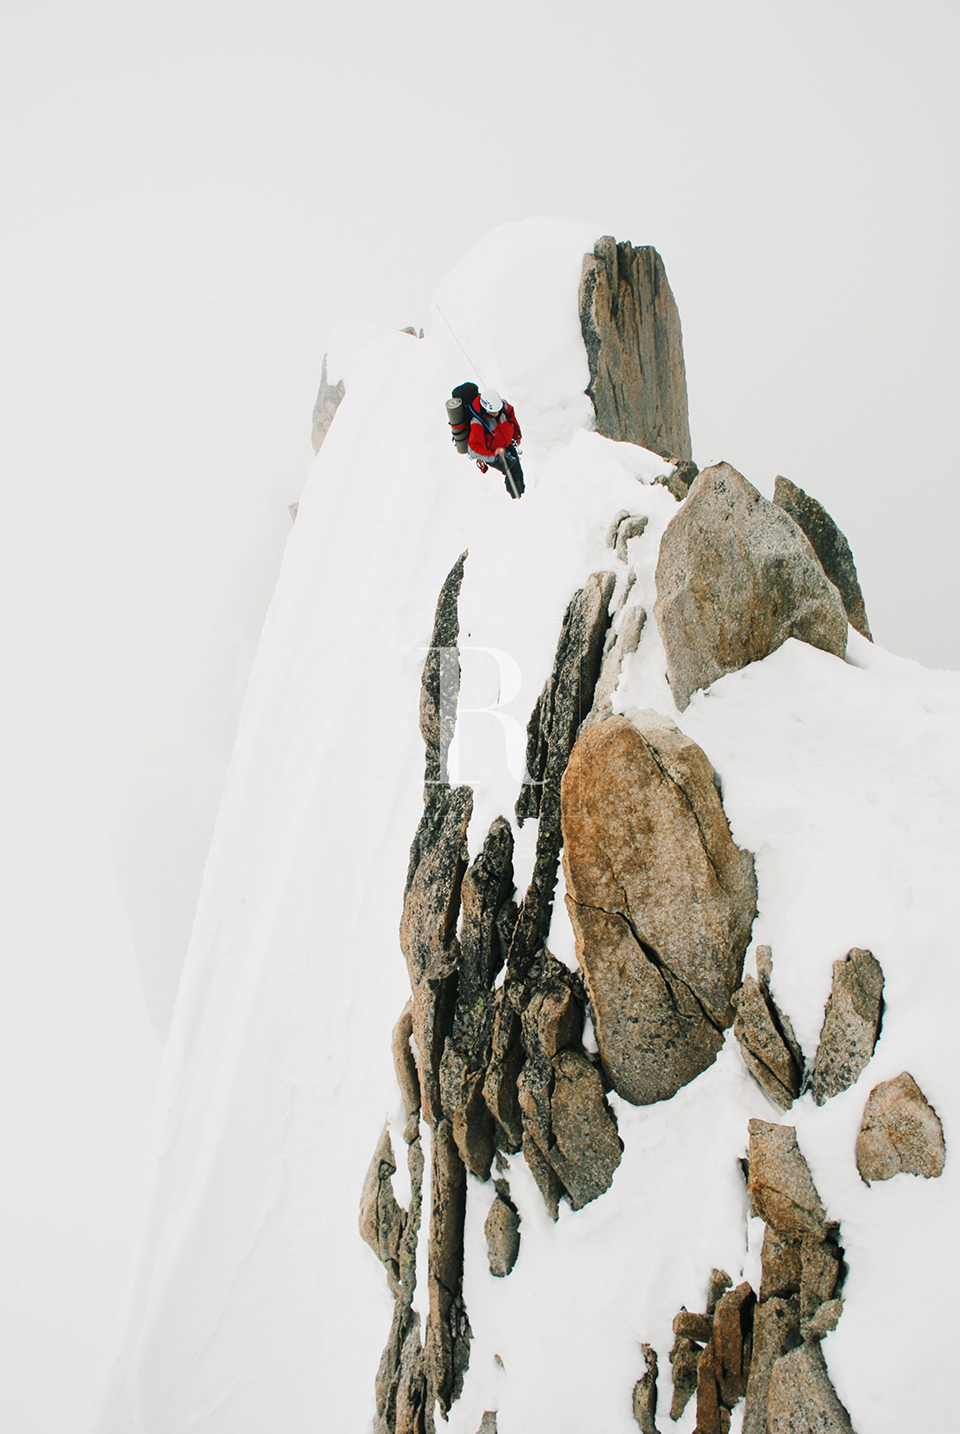 RYAN PARKER PHOTOGRAPHY_TRAVEL_FRANCE_MONT BLANCE_MOUNTAIN_ICE_SNOW_CABLE WAY--2.jpg